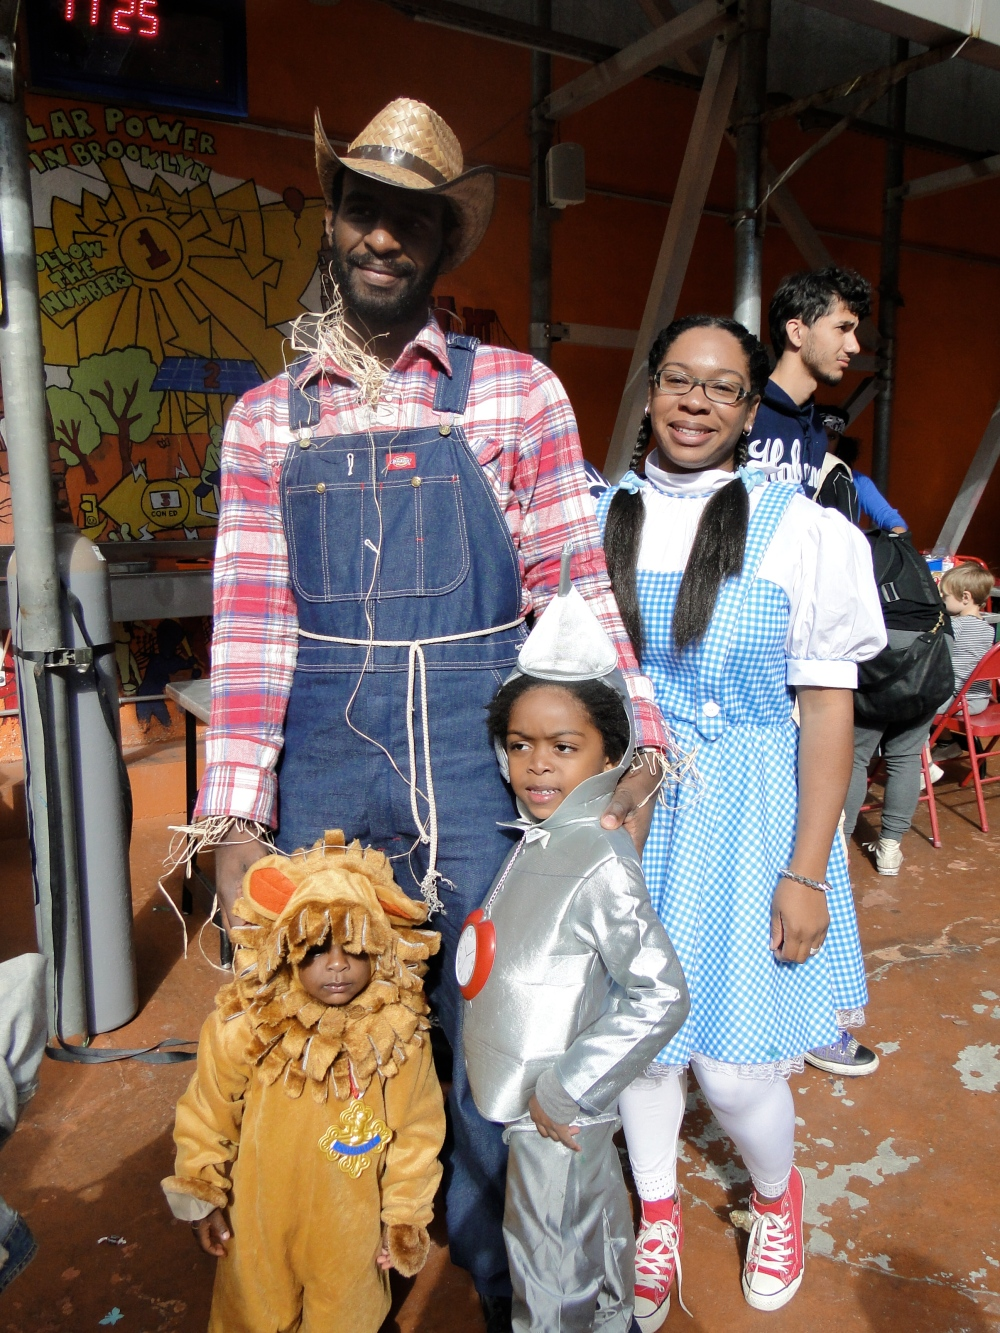 Wizard of Oz family at Halloween